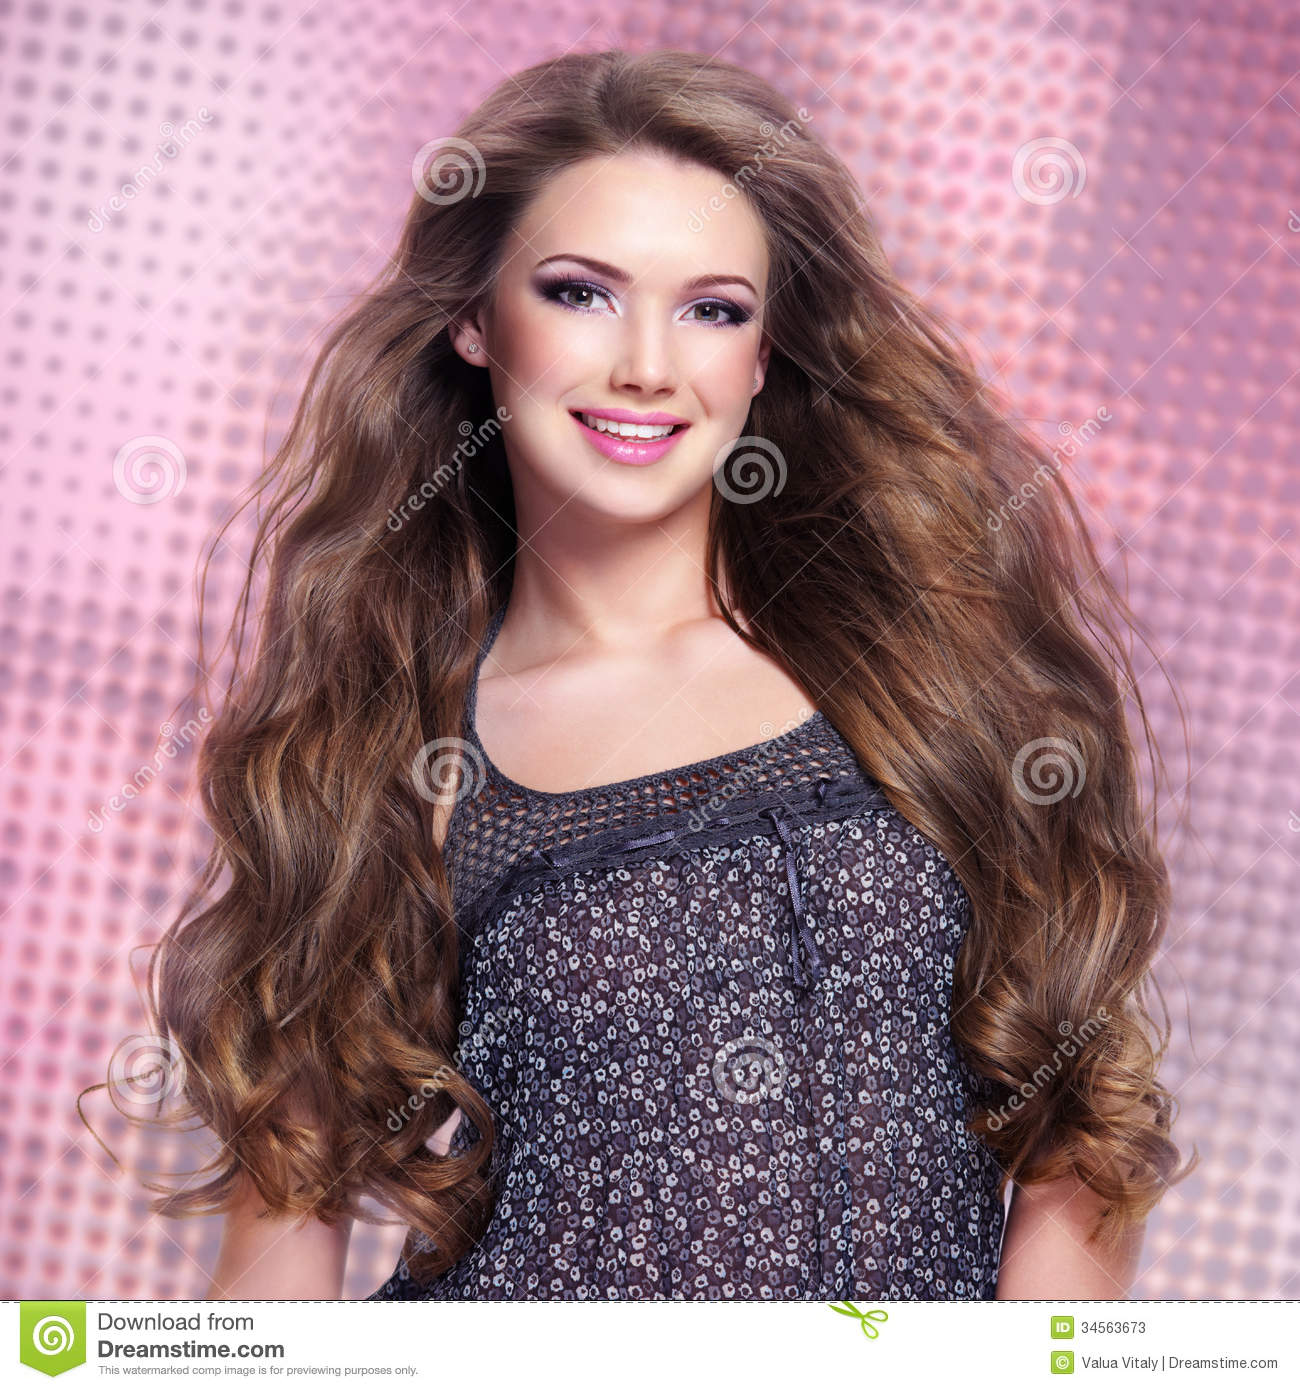 Beautiful young smiling woman with long hairs looking at camera